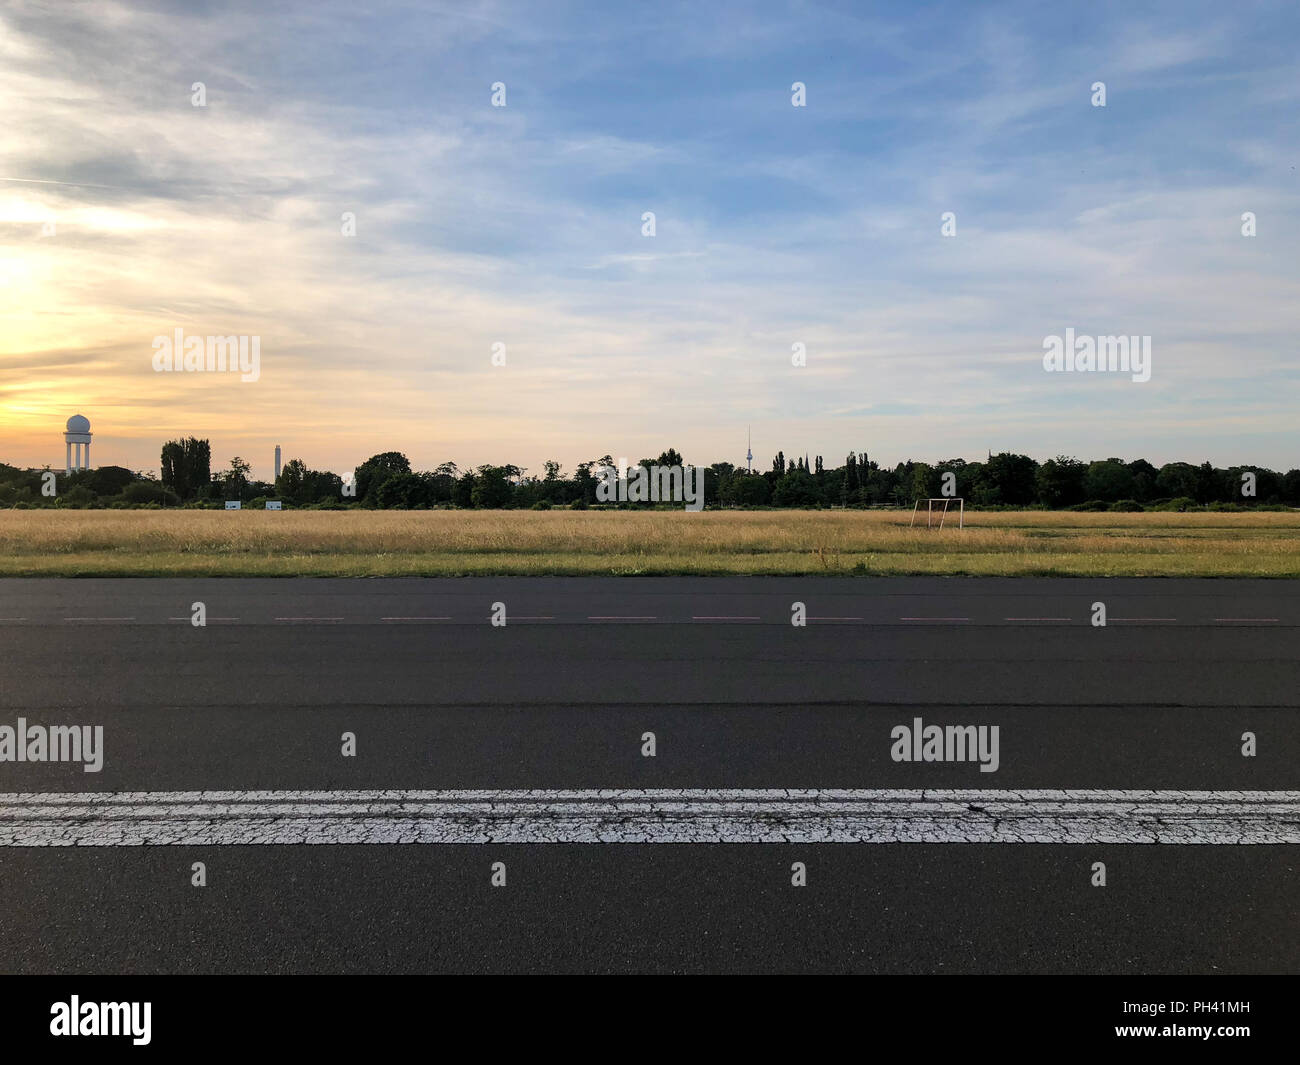 View from Tempelhofer Feld towards the Berlin city center. - Stock Image